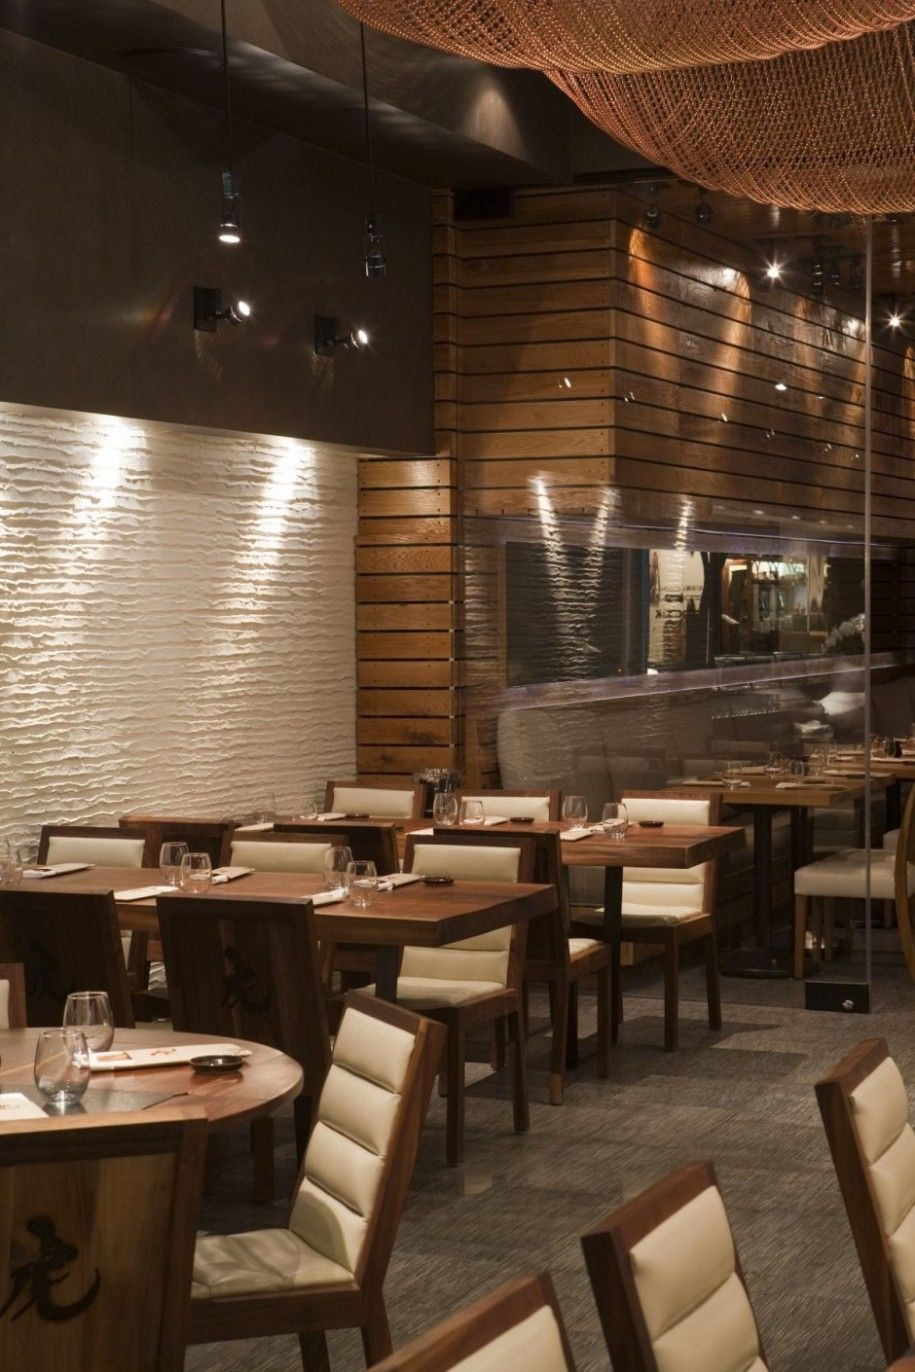 Tiger Restaurant With Wooden Wall Covering Panelling And